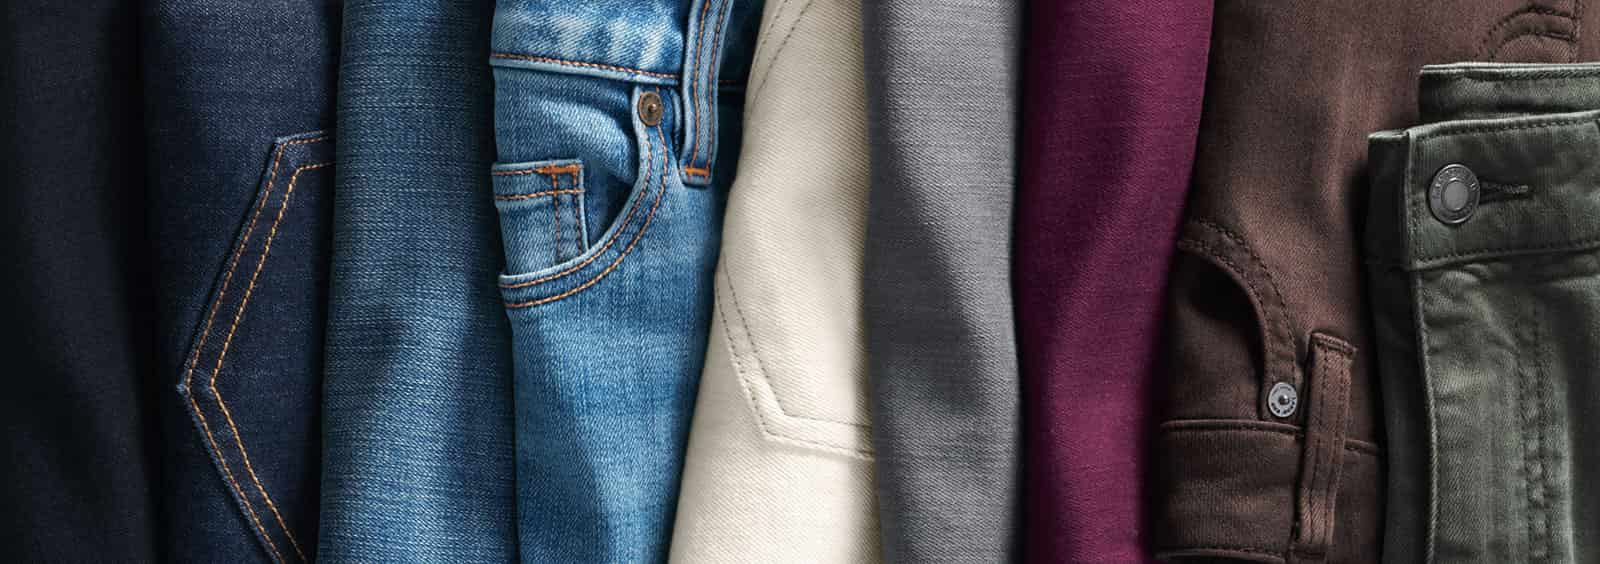 Pull-on vs. Mid-Rise Jeans: Which Is Best for You? | Lands' End